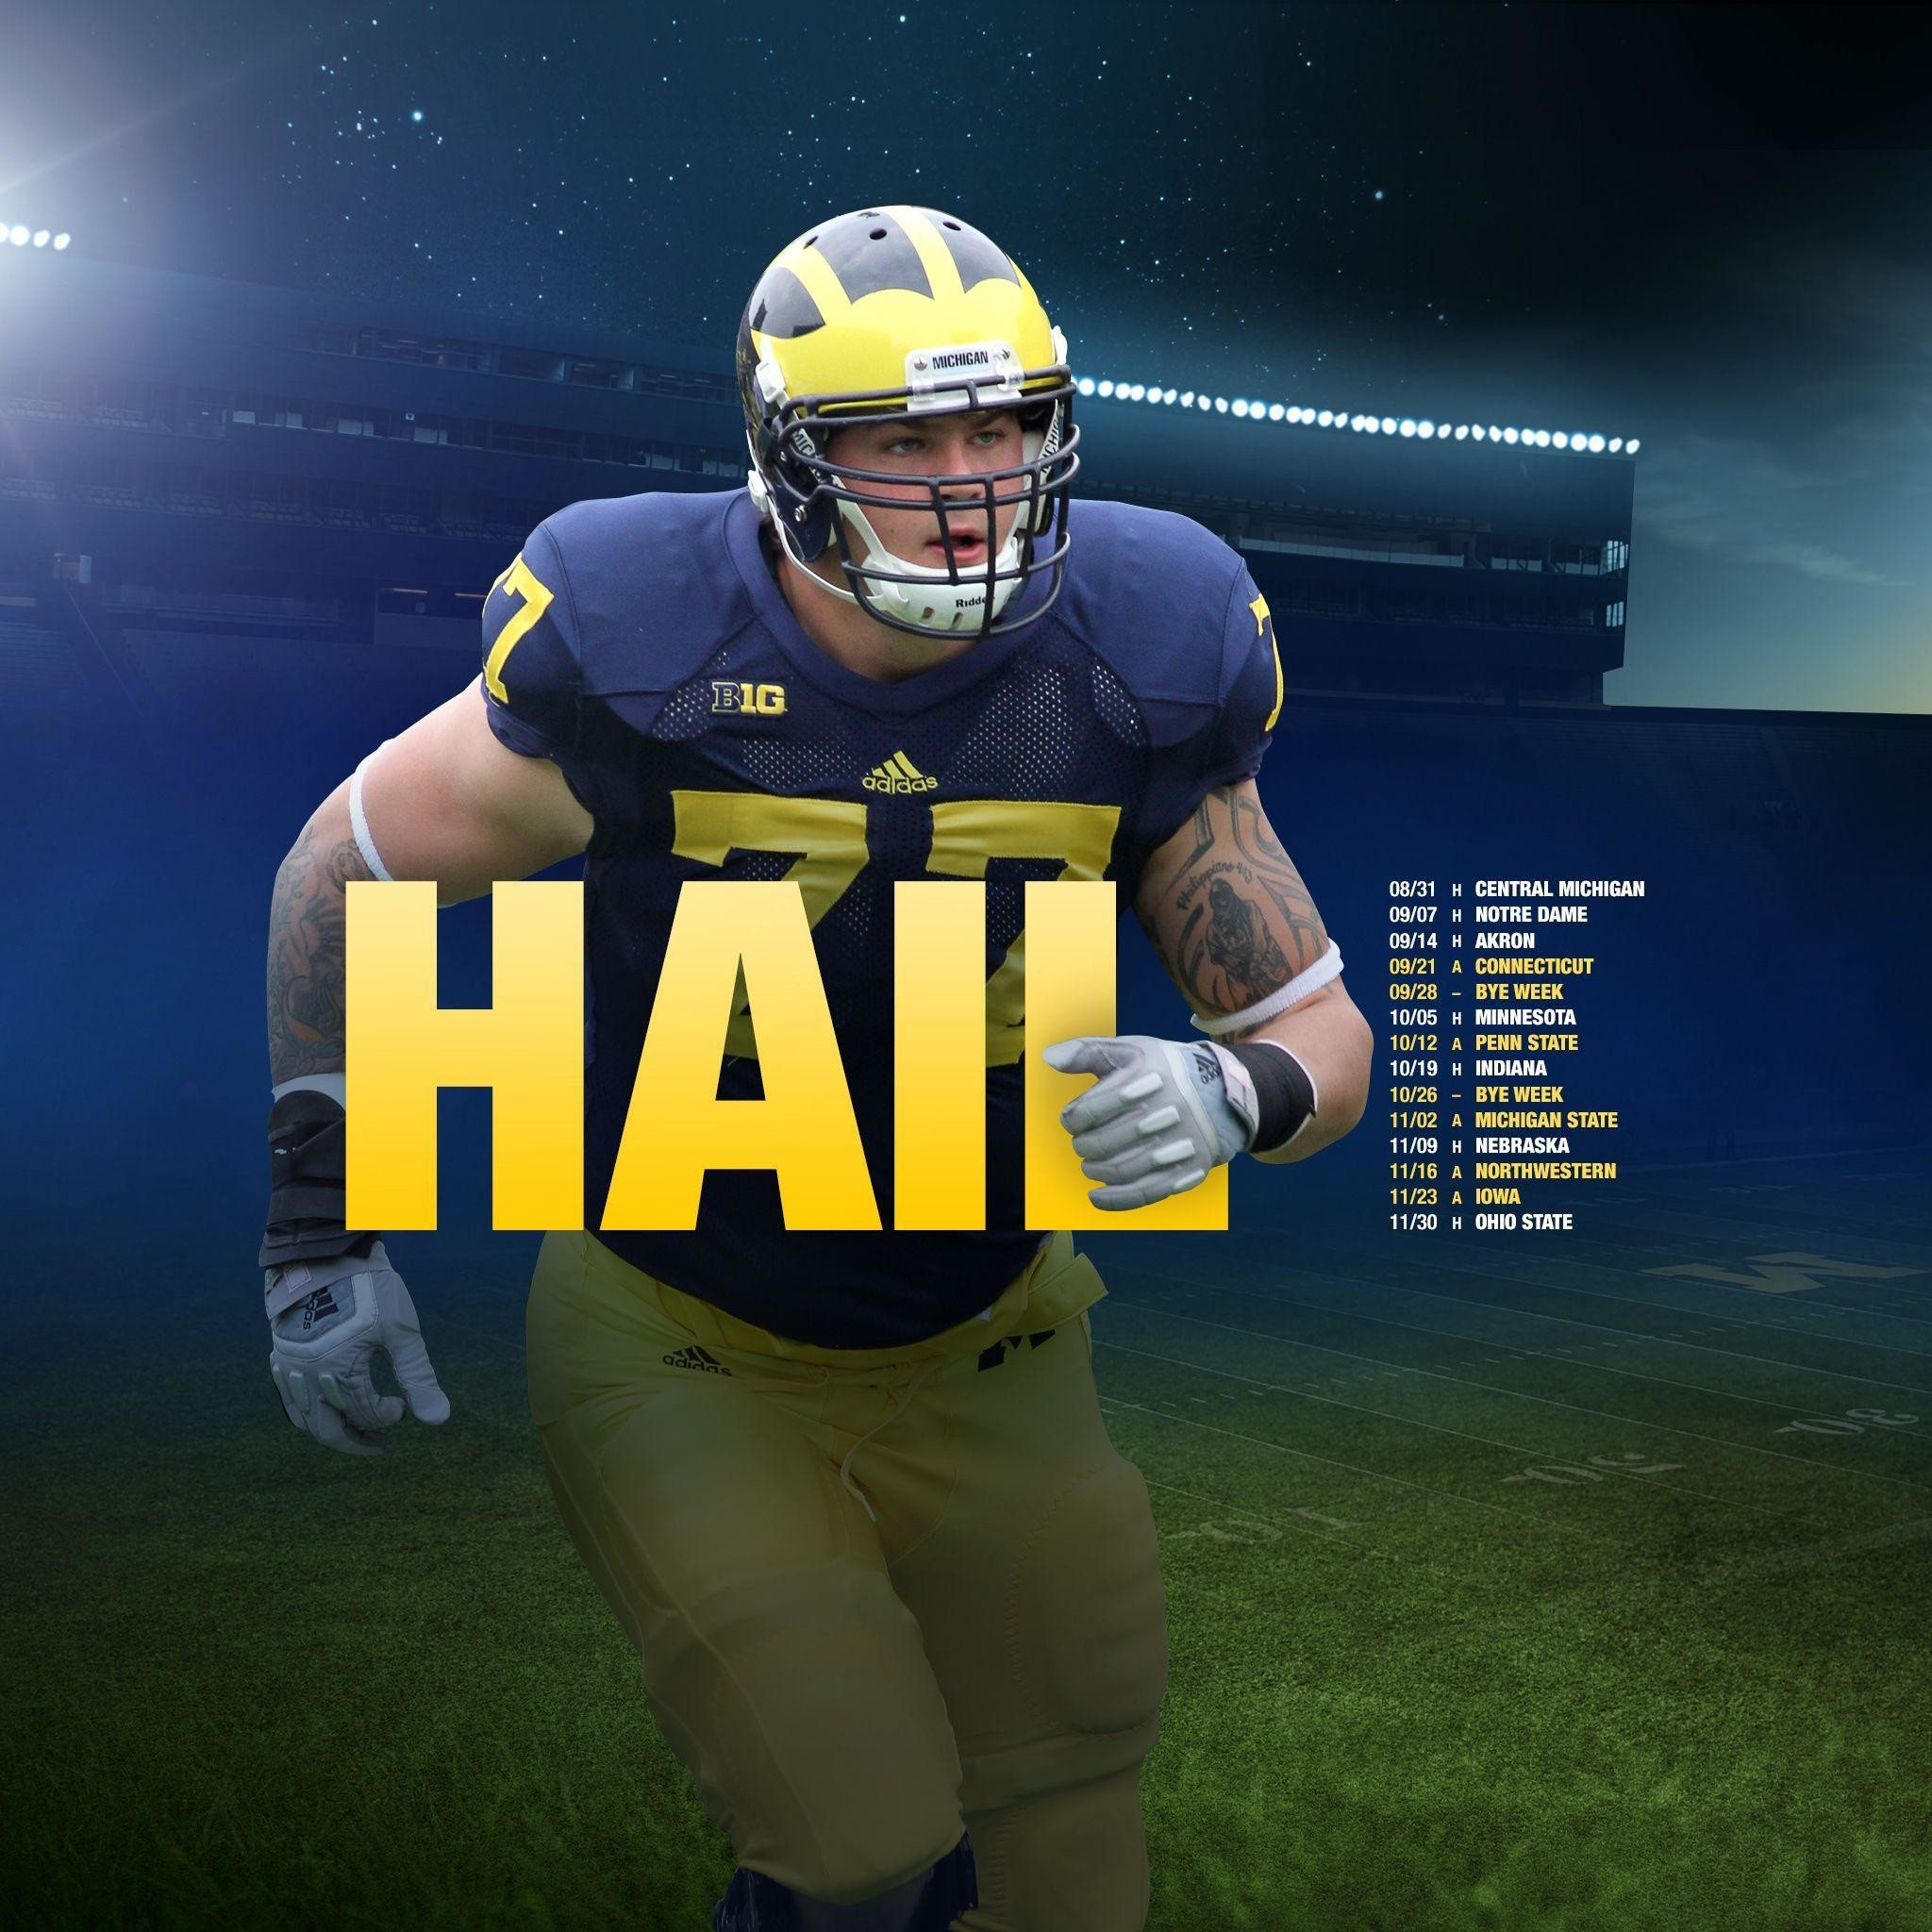 Michigan Football Desktop Wallpaper (71+ Images